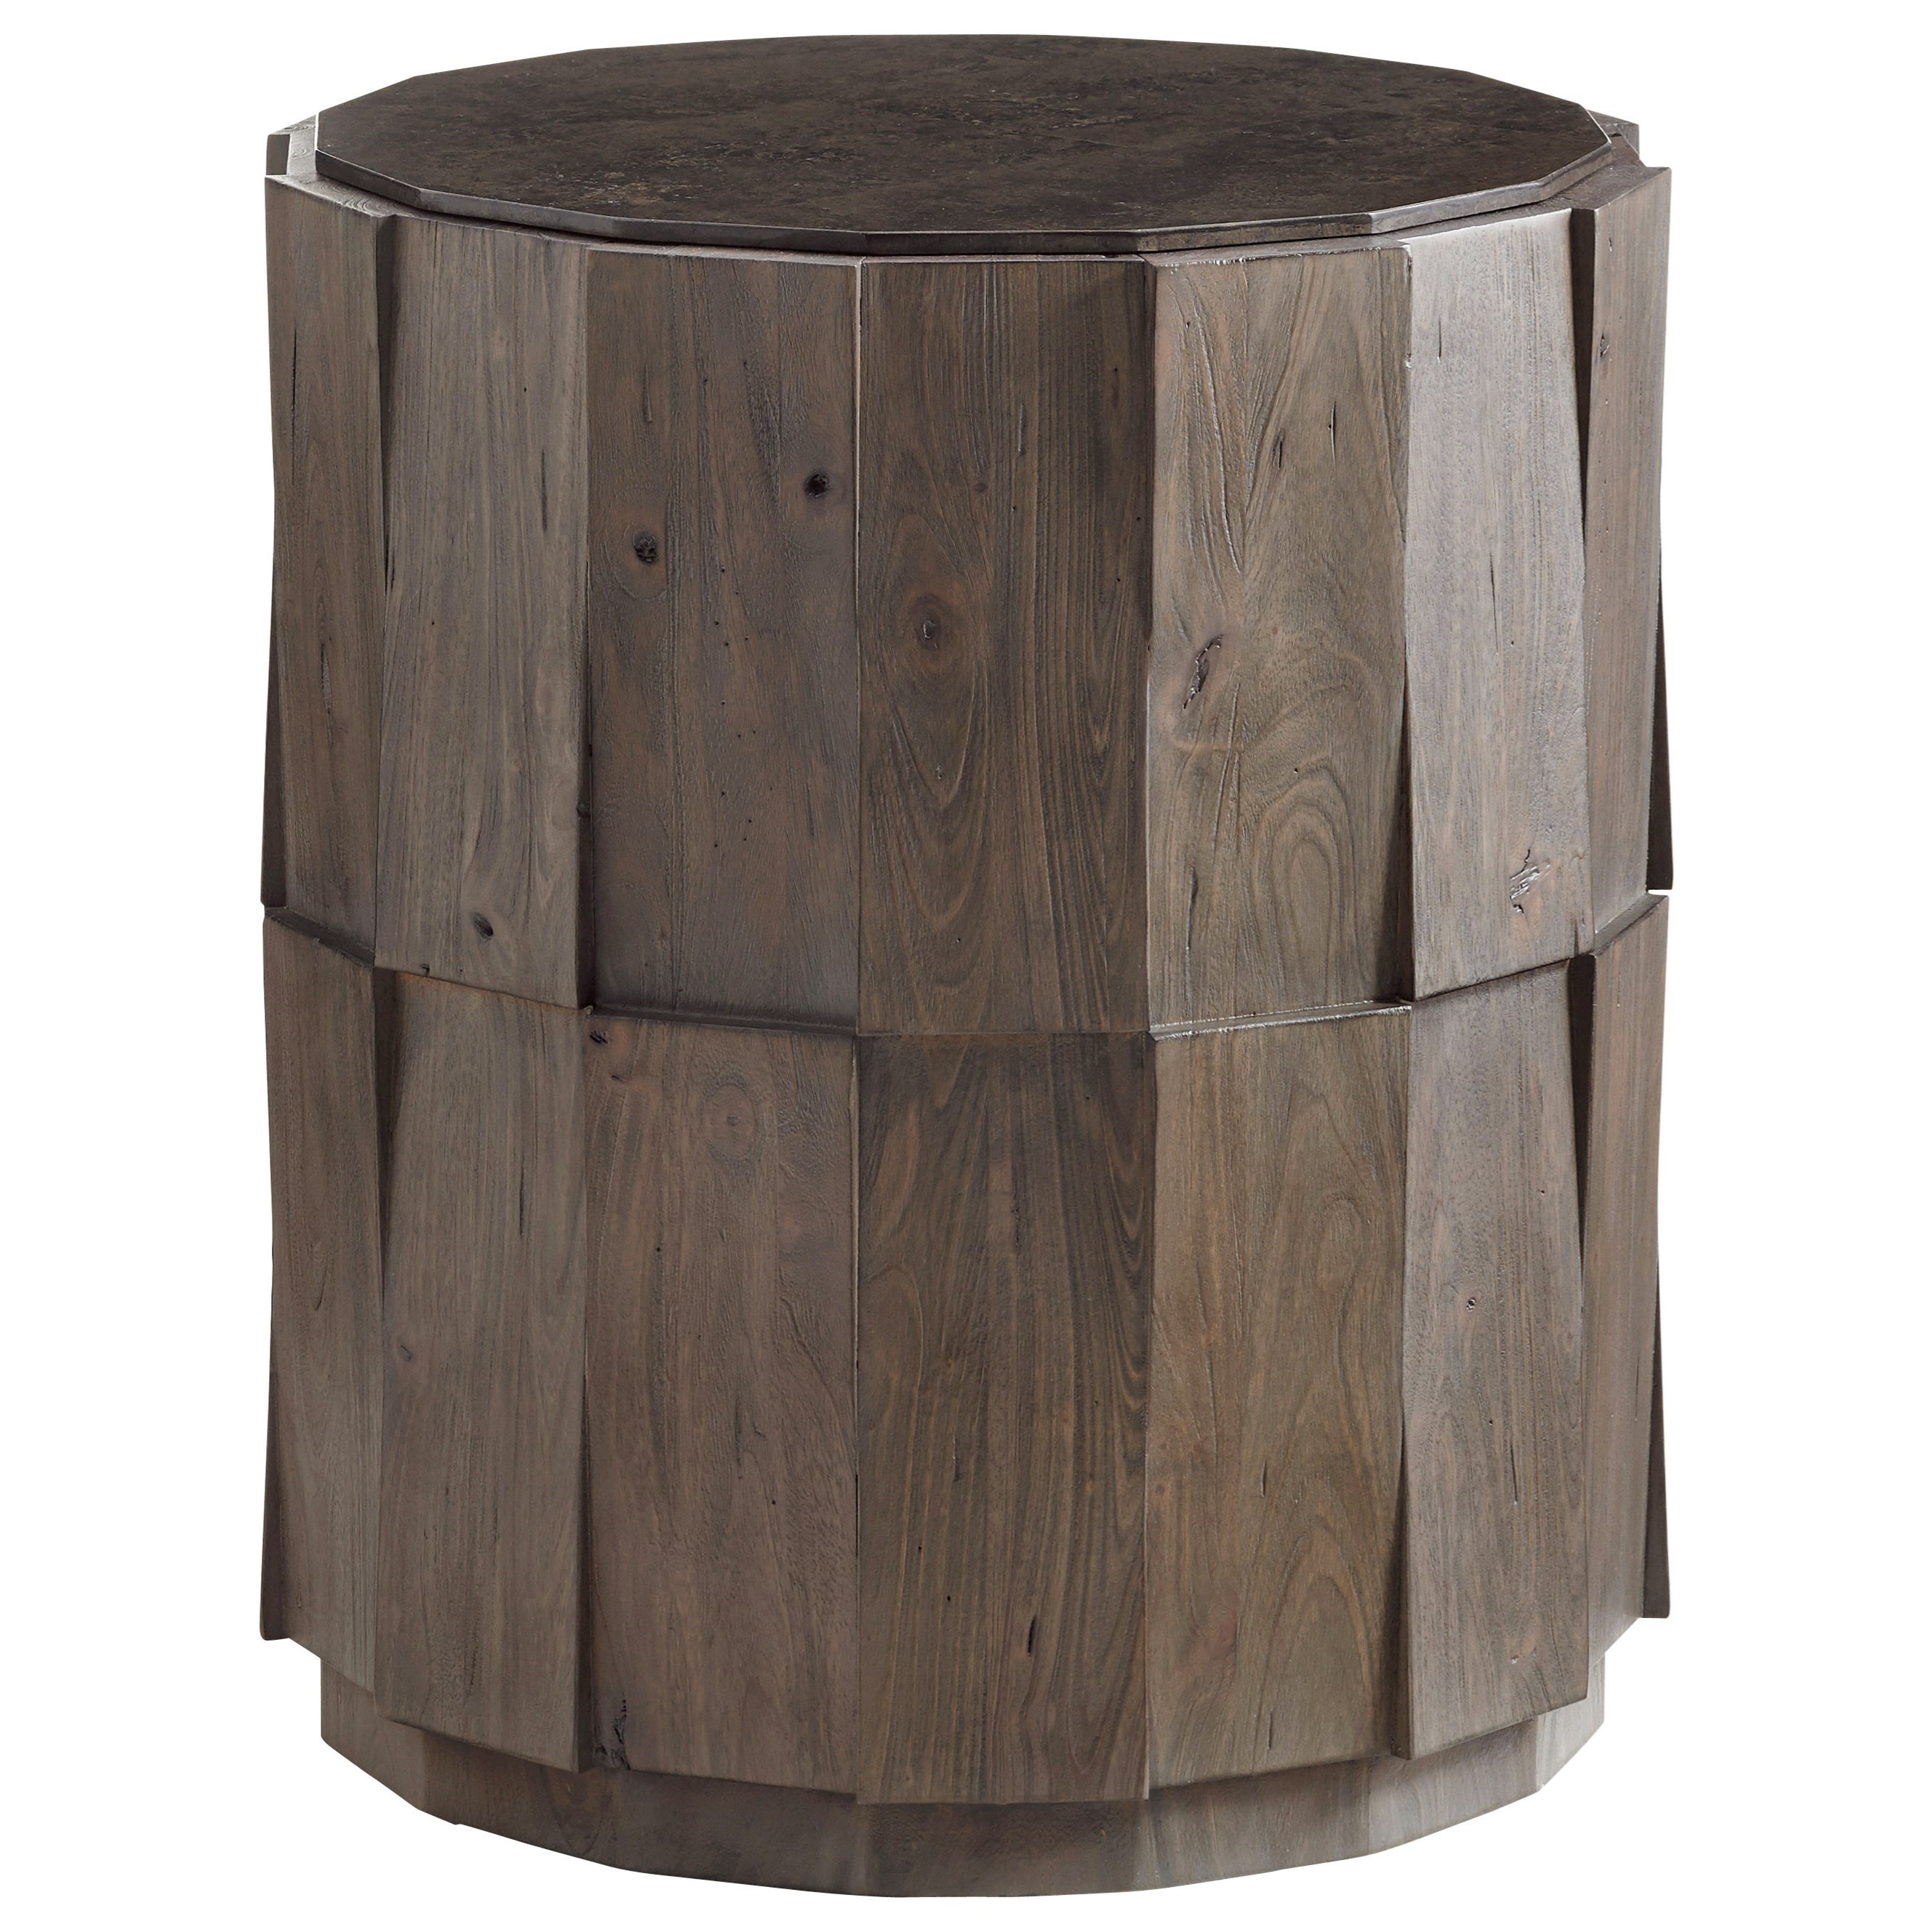 Tommy Bahama Home Cypress Point Everett Round Travertine End Table - Item Number: 562-951